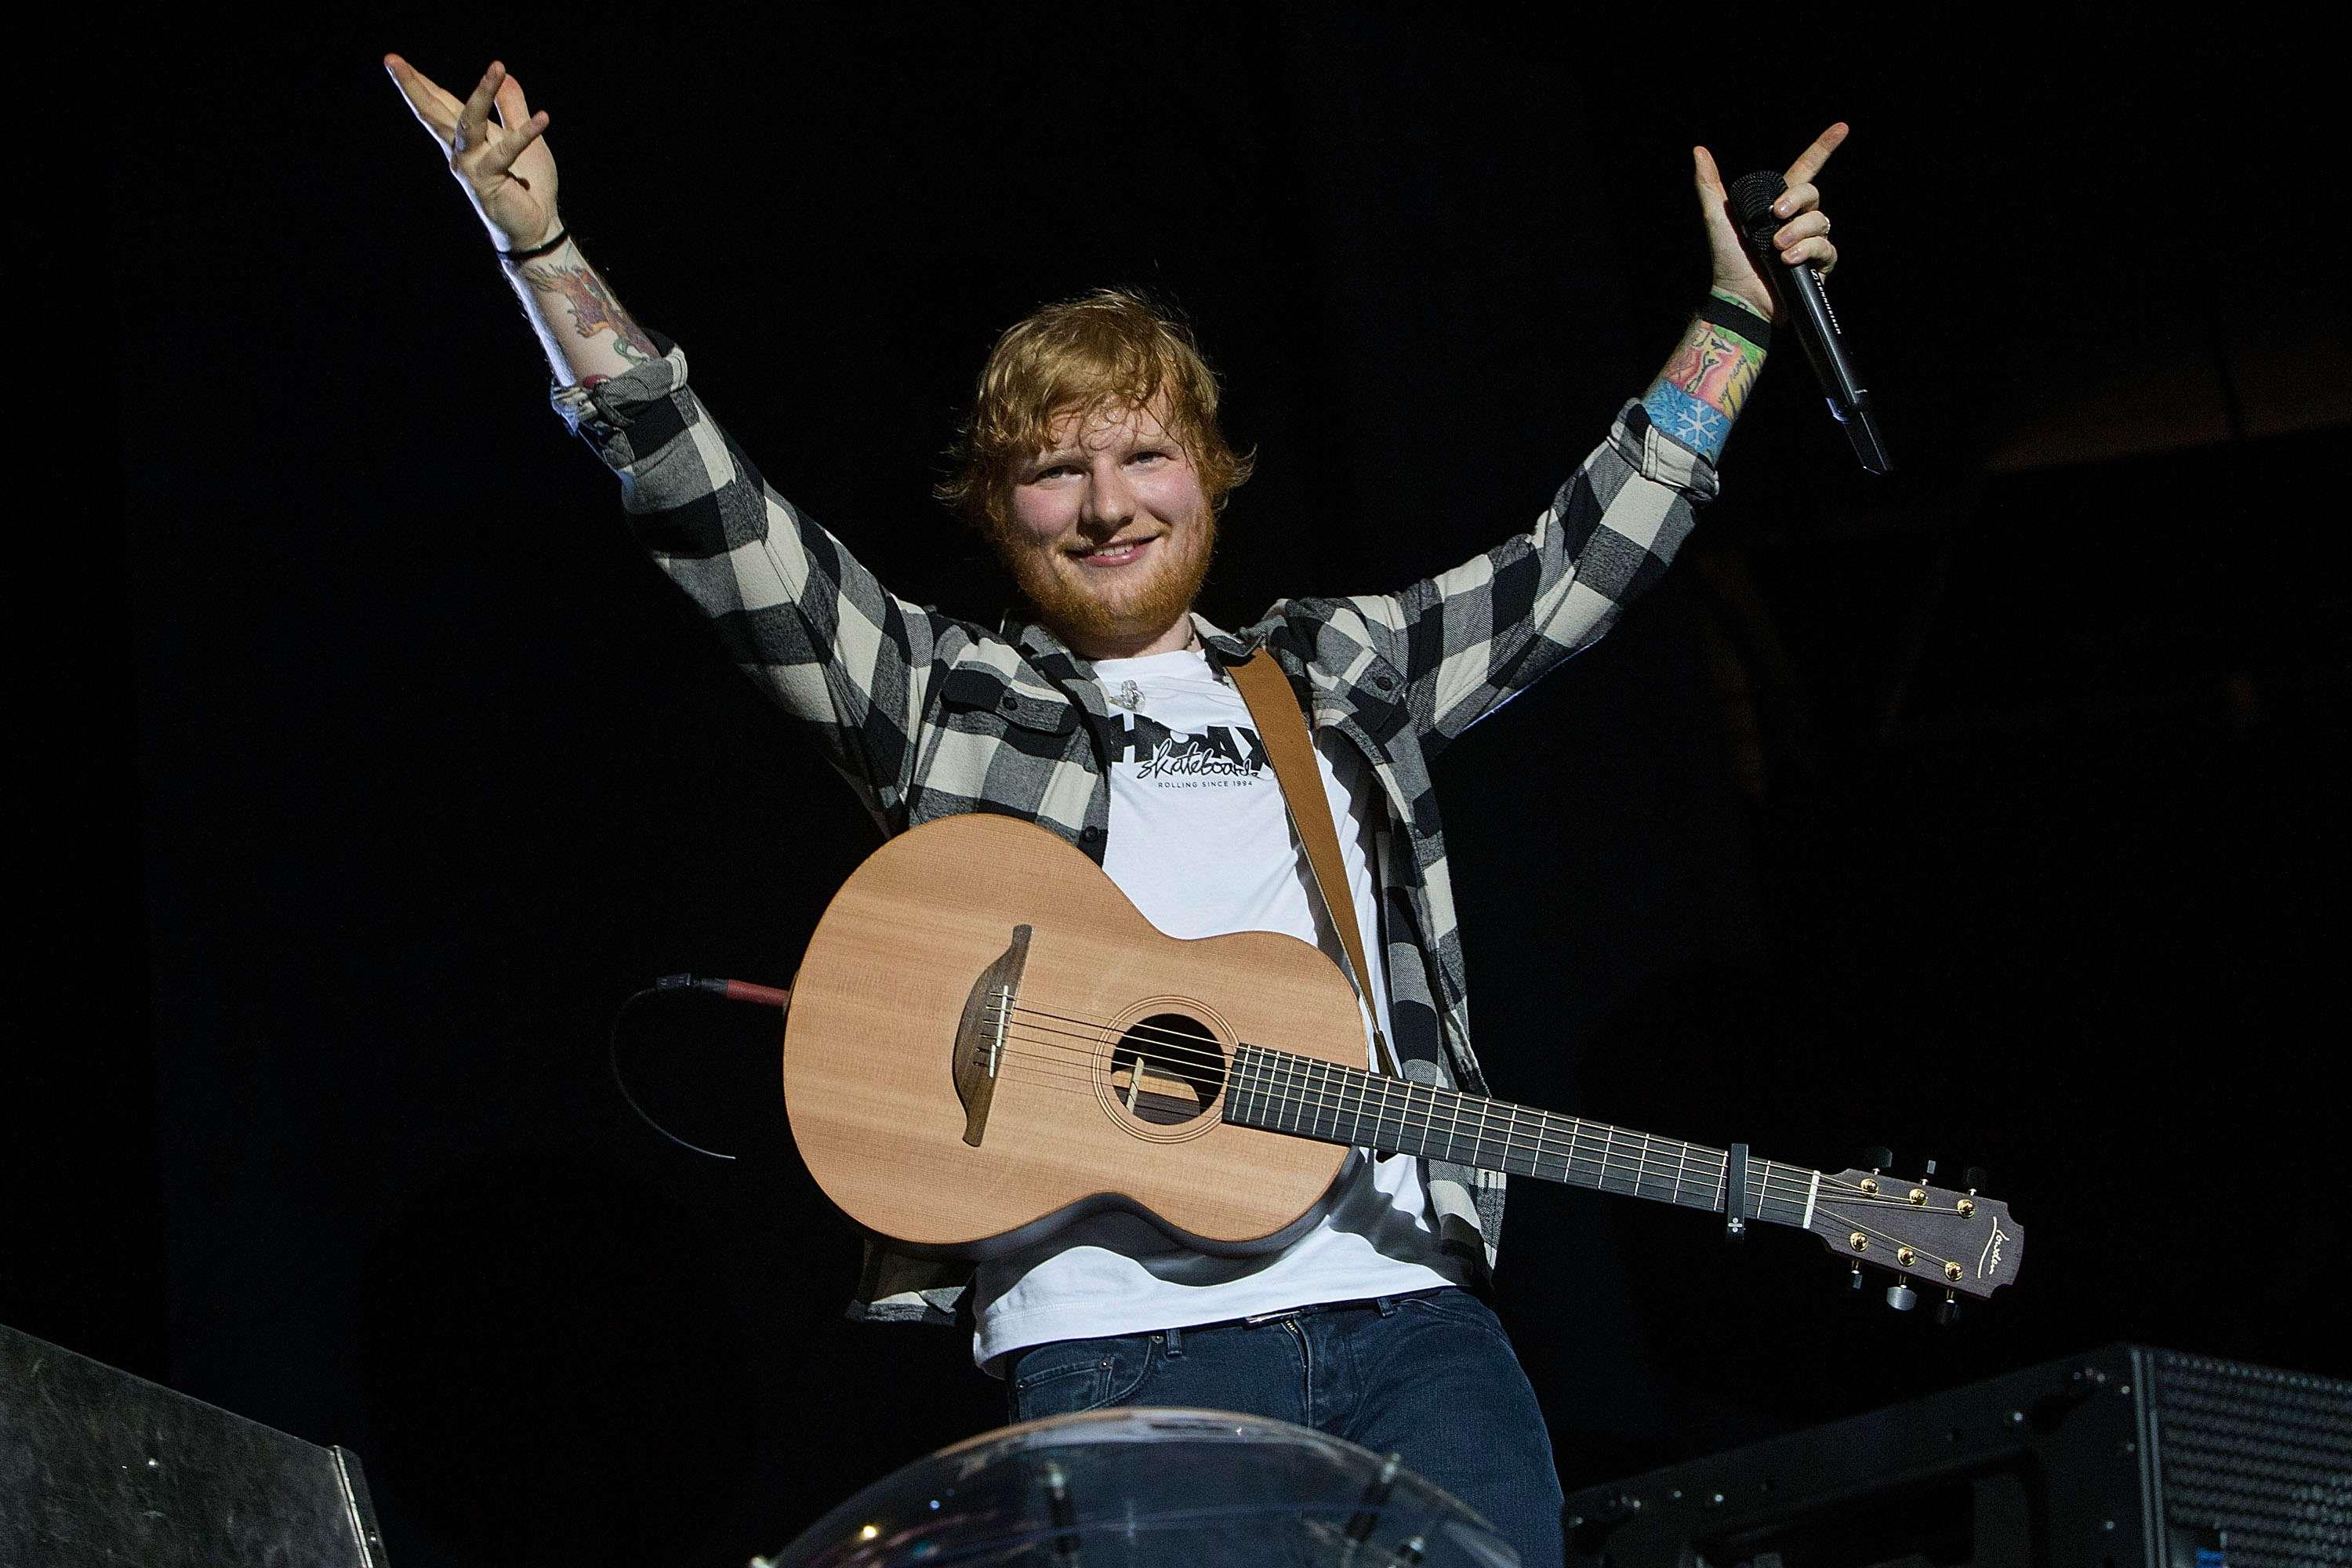 Ed Sheeran Concludes 'Divide' Tour, Sets All-Time Touring Record At $775.6M